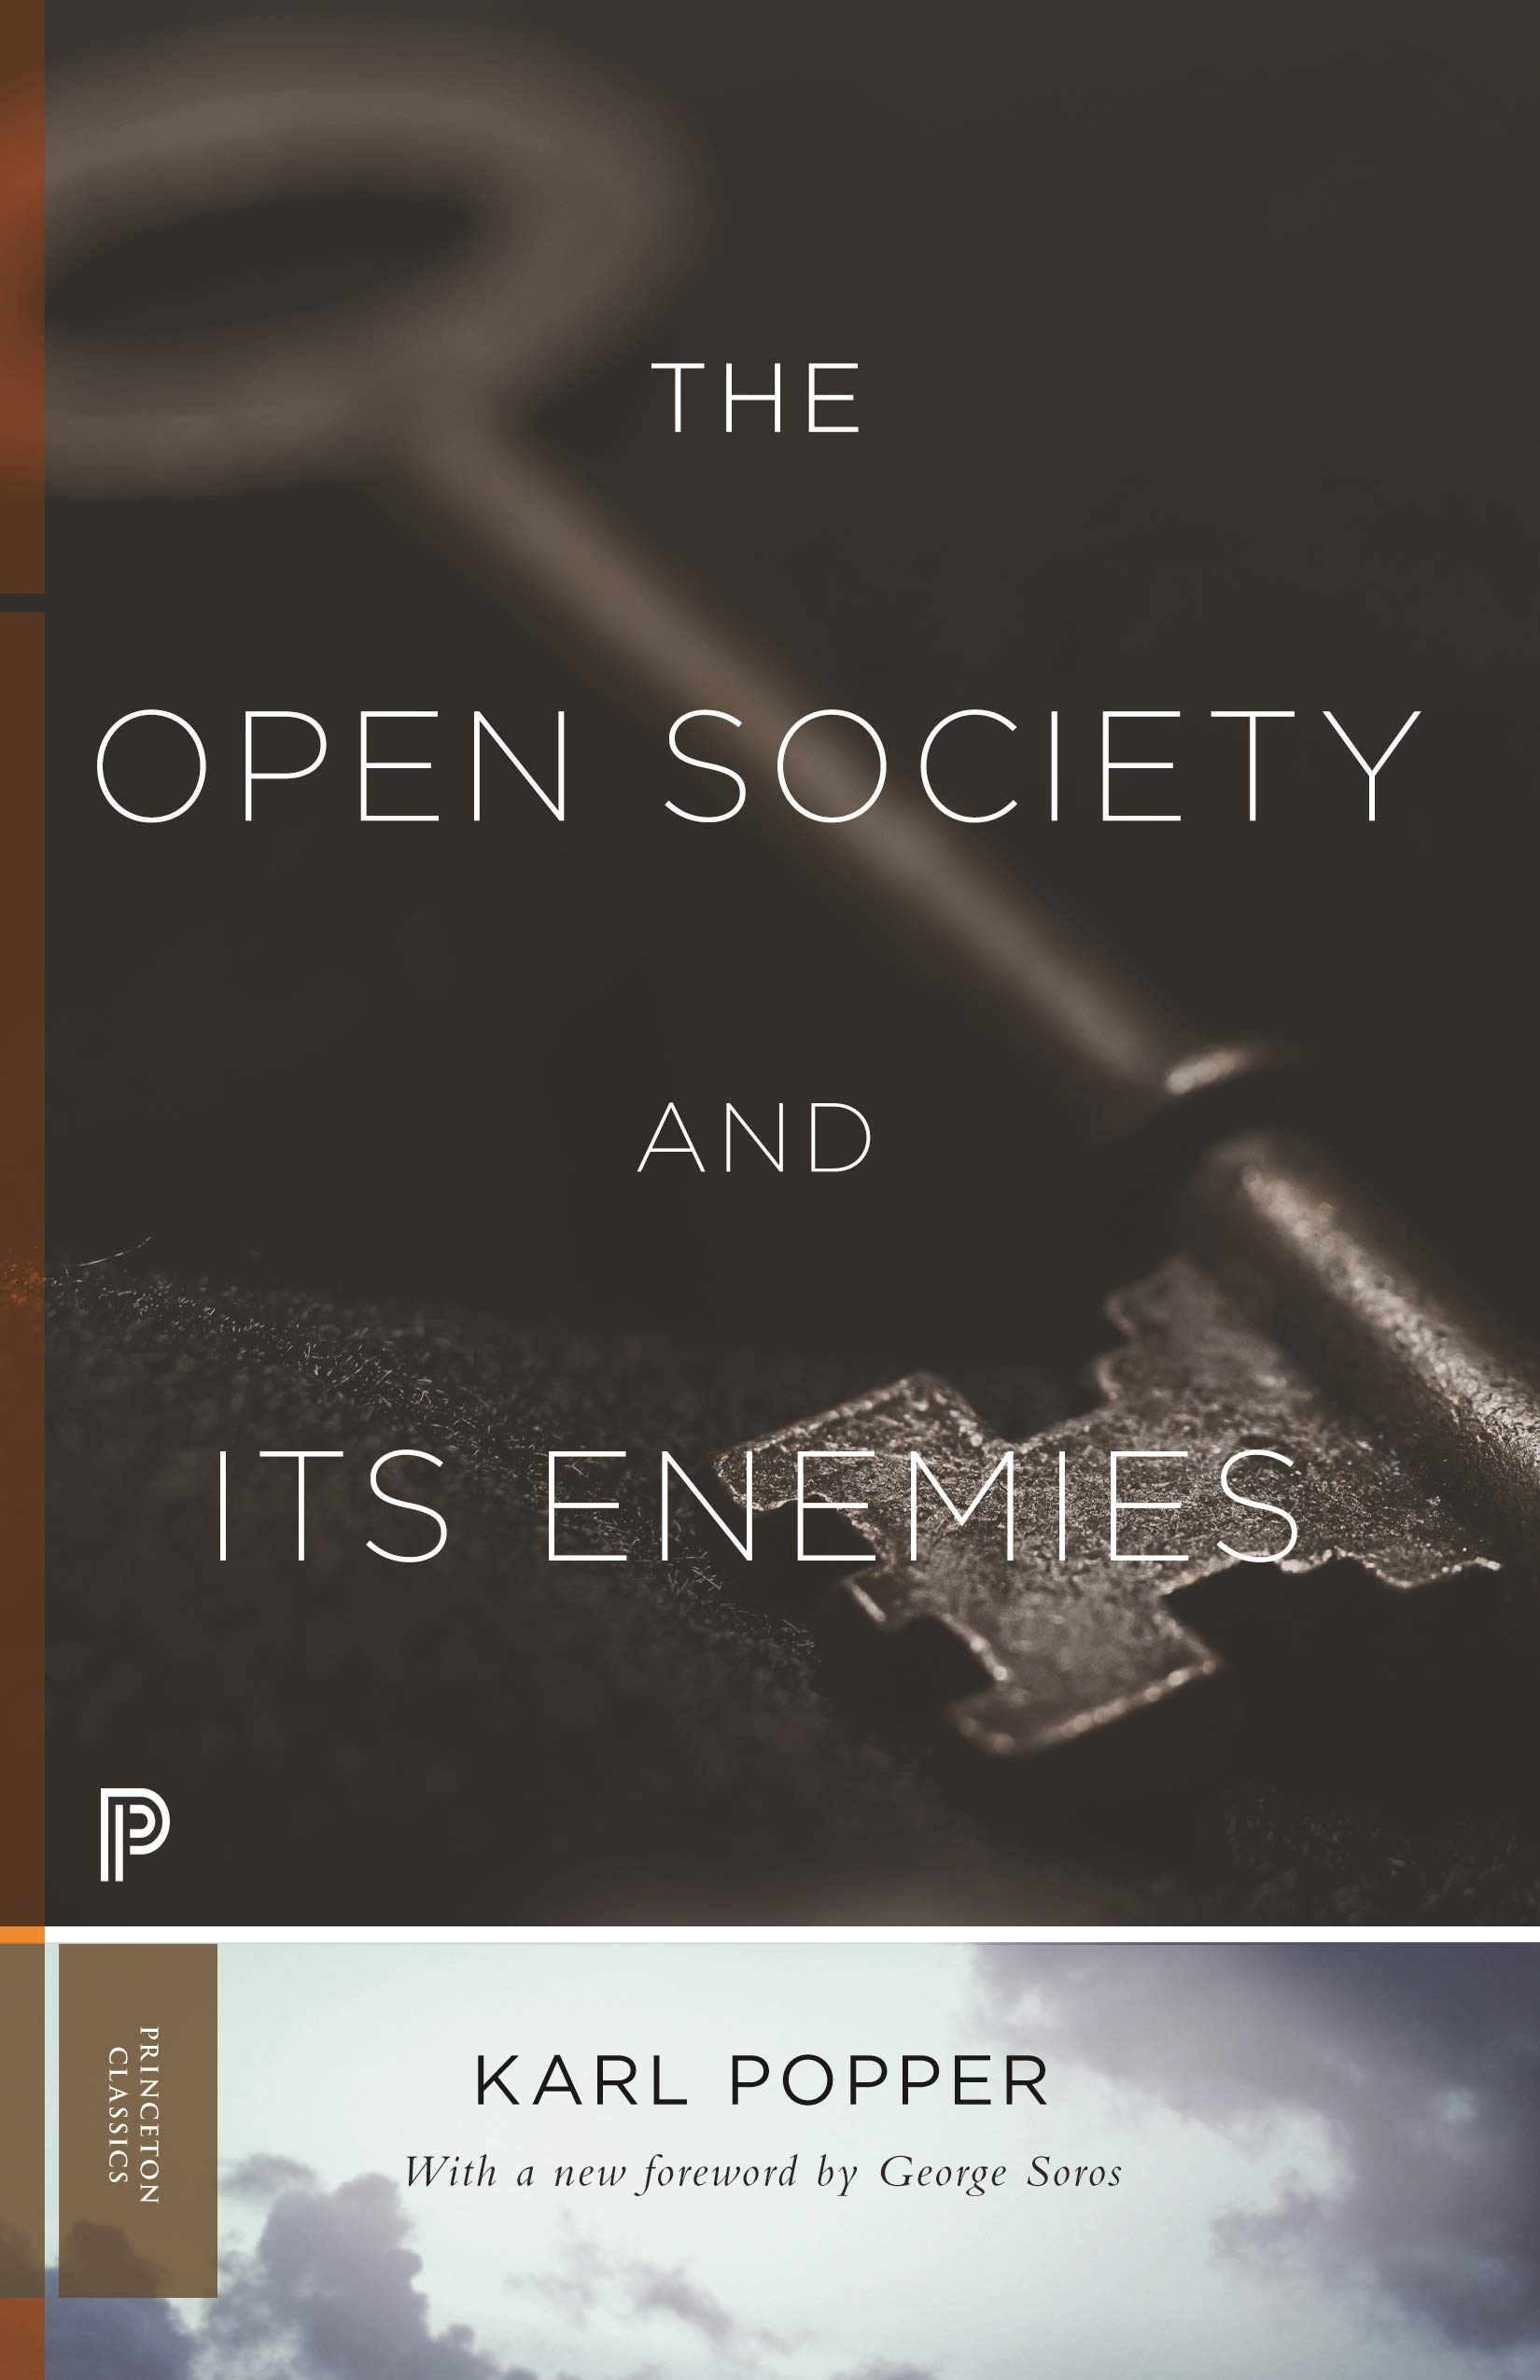 The Open Society and Its Enemies (Princeton Classics Book 119)